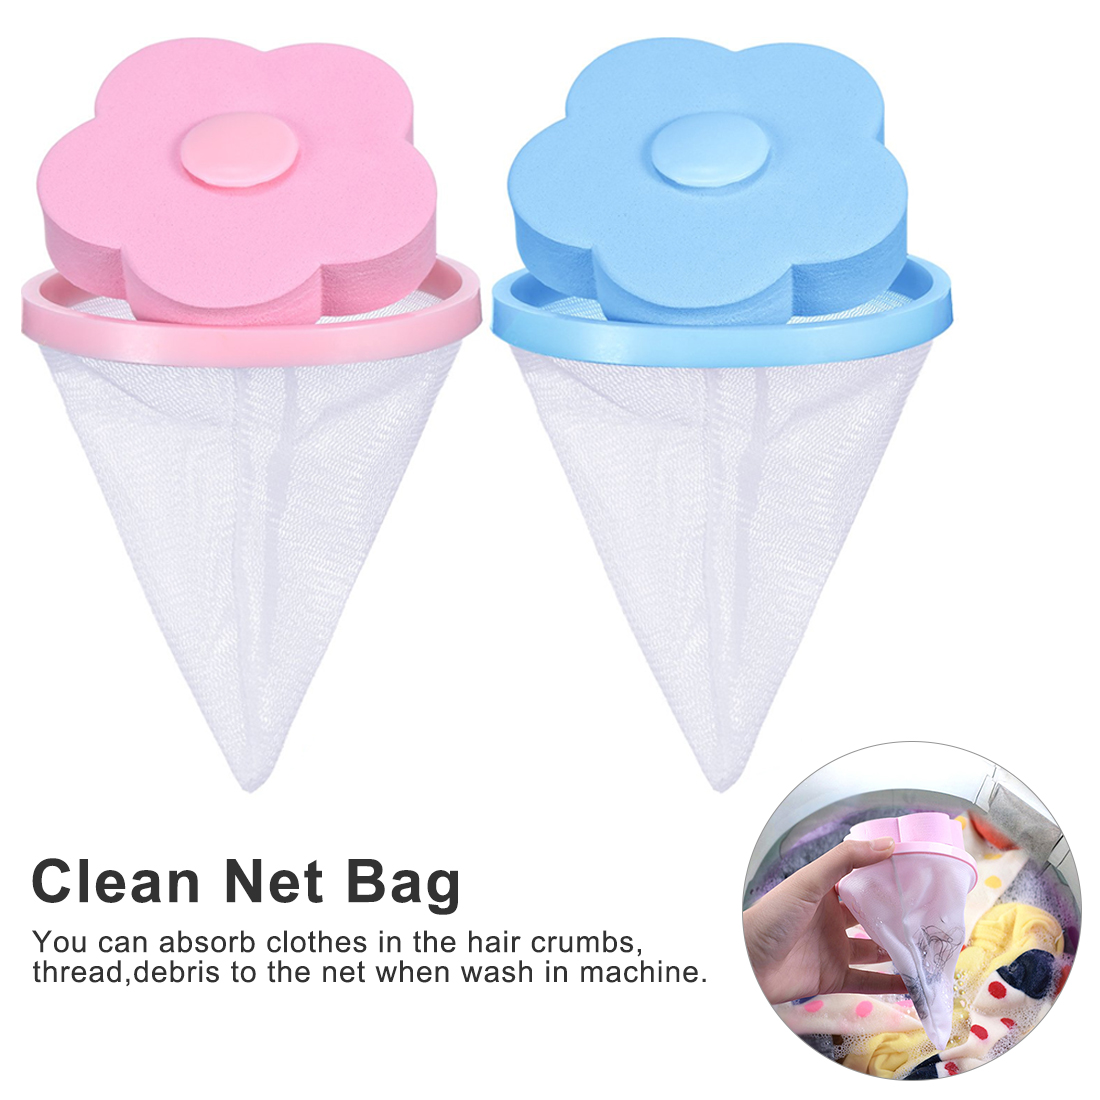 Filter Bag Mesh Filtering Hair Removal Device Wool Floating Washer Style Laundry Cleaning NeededFilter Bag Mesh Filtering Hair Removal Device Wool Floating Washer Style Laundry Cleaning Needed